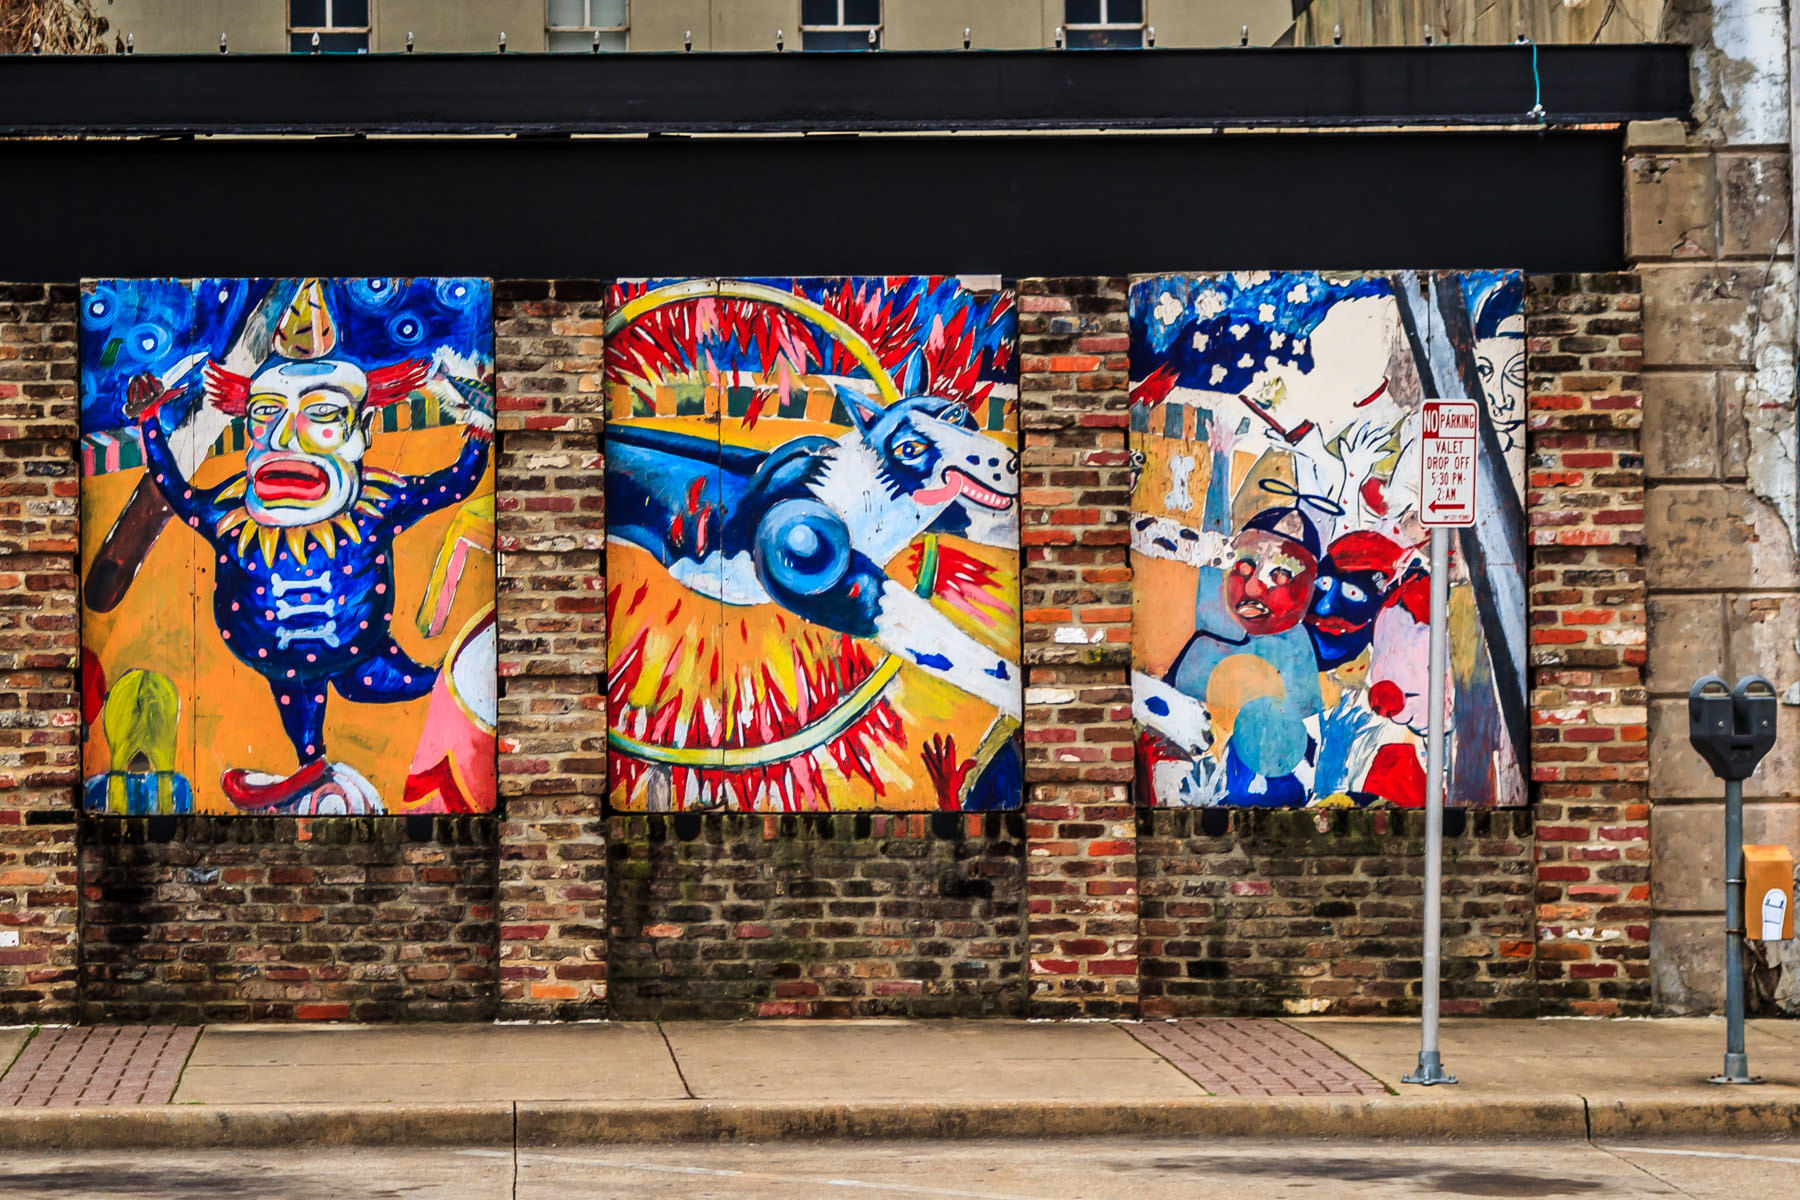 Public art in Downtown Tyler, Texas.